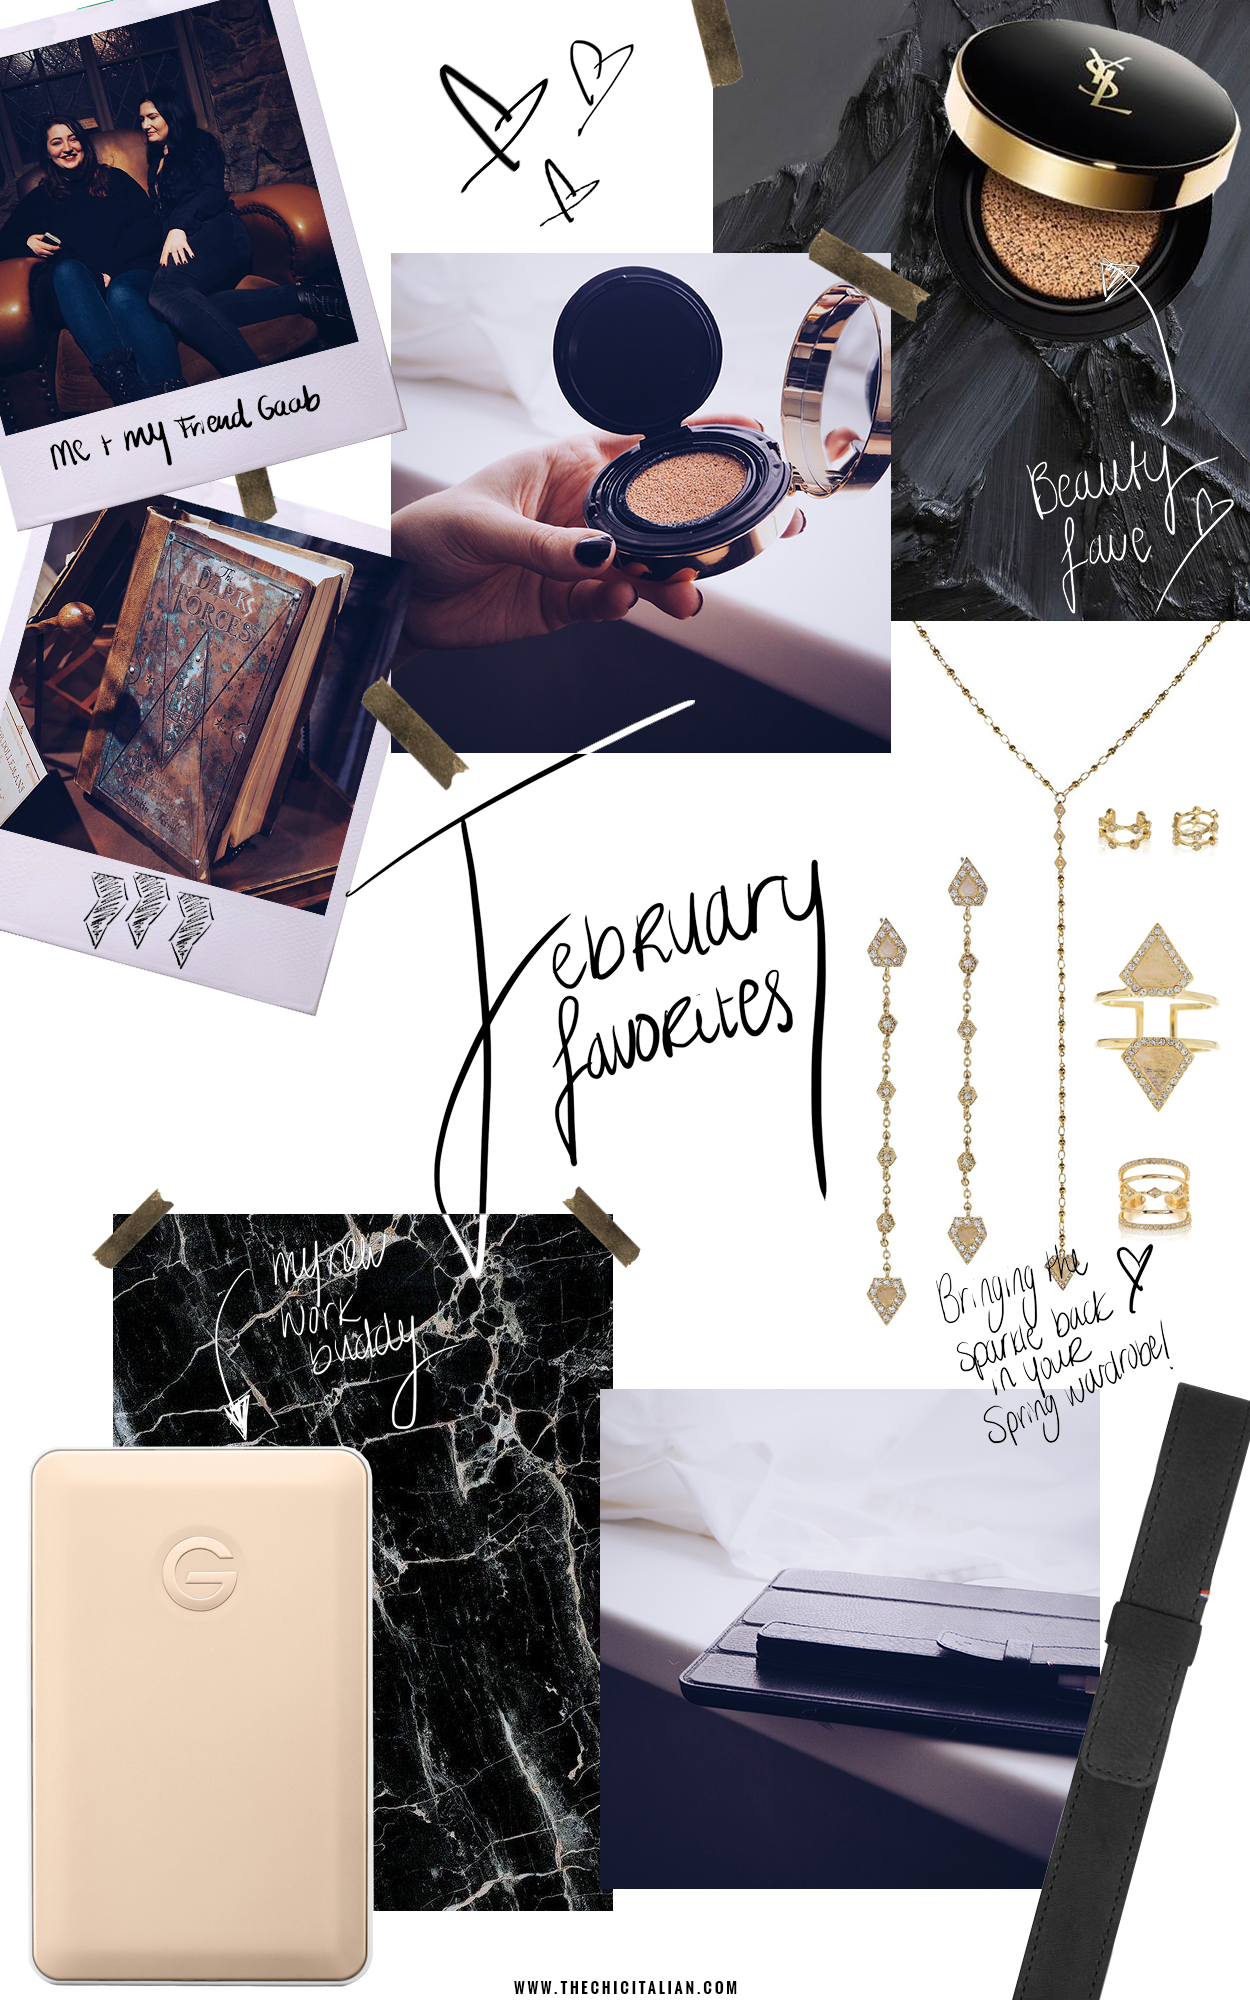 FEBRUARY FAVORITES || THECHICITALIAN || My monthly favorites with the new Spring collection from Luv Aj, Harry Potter: The Exhibition, Yves Saint Laurent cushion foundation and more!